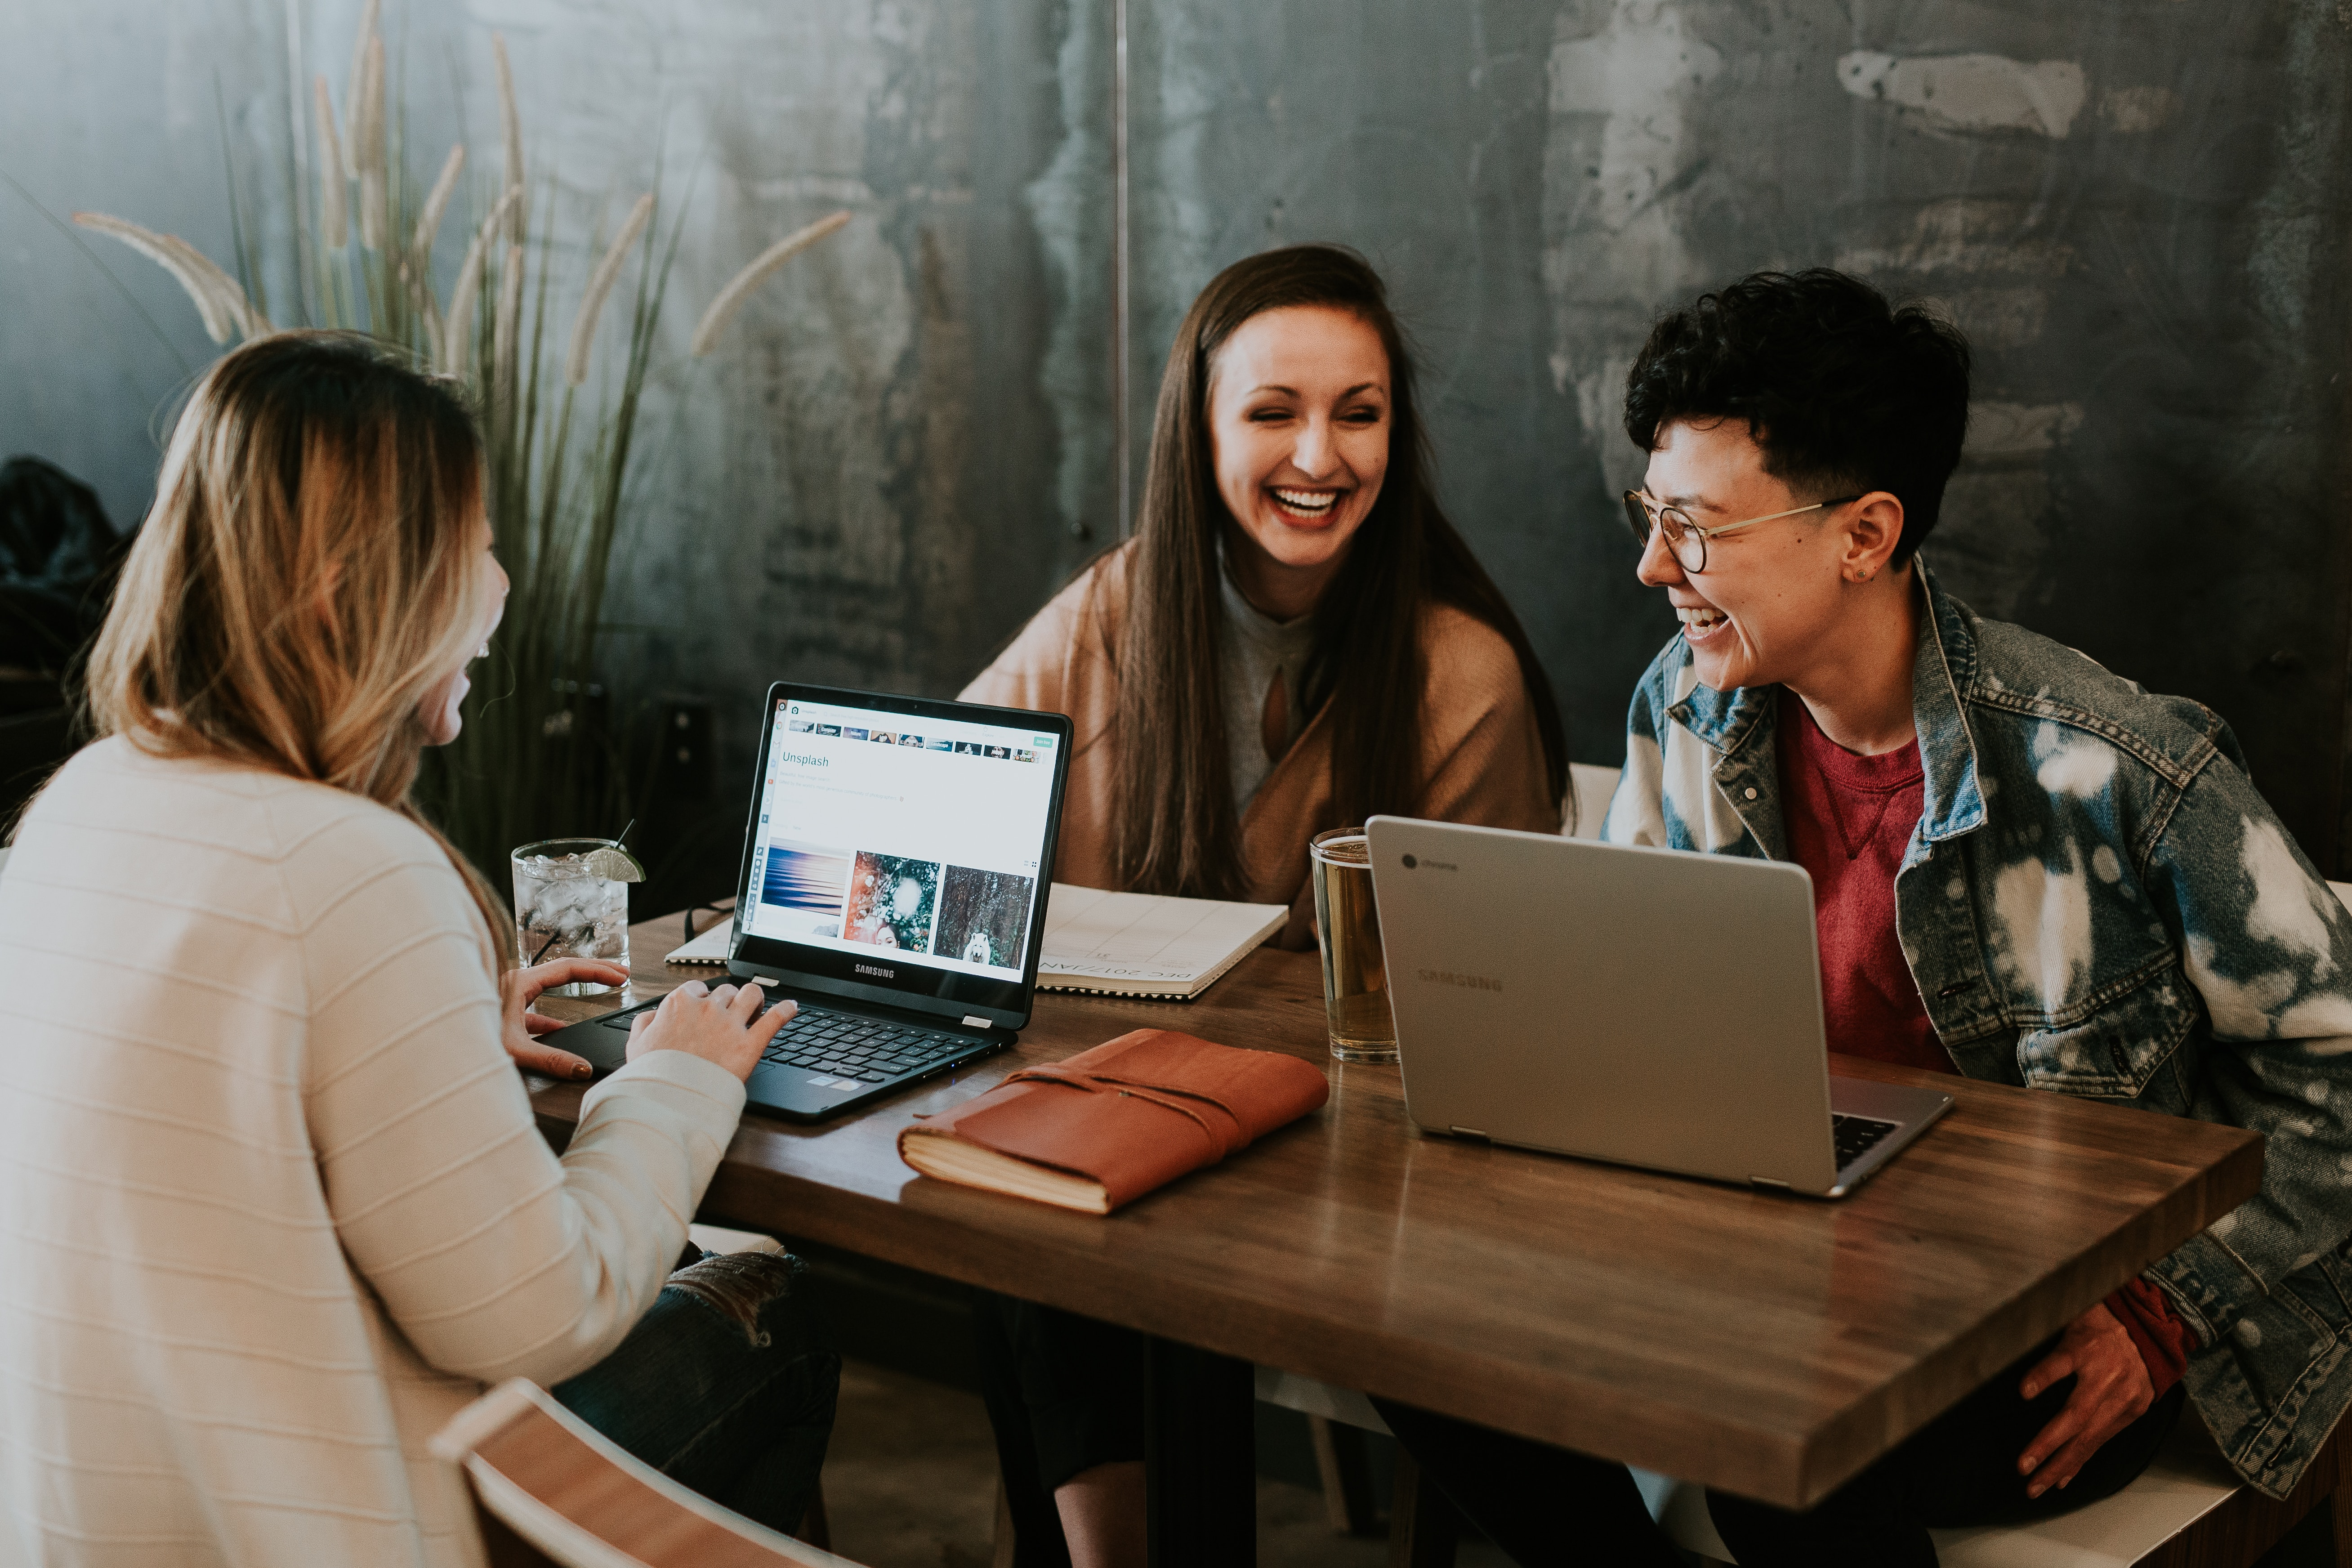 4 Tips For Gen Z To Land Their First Job